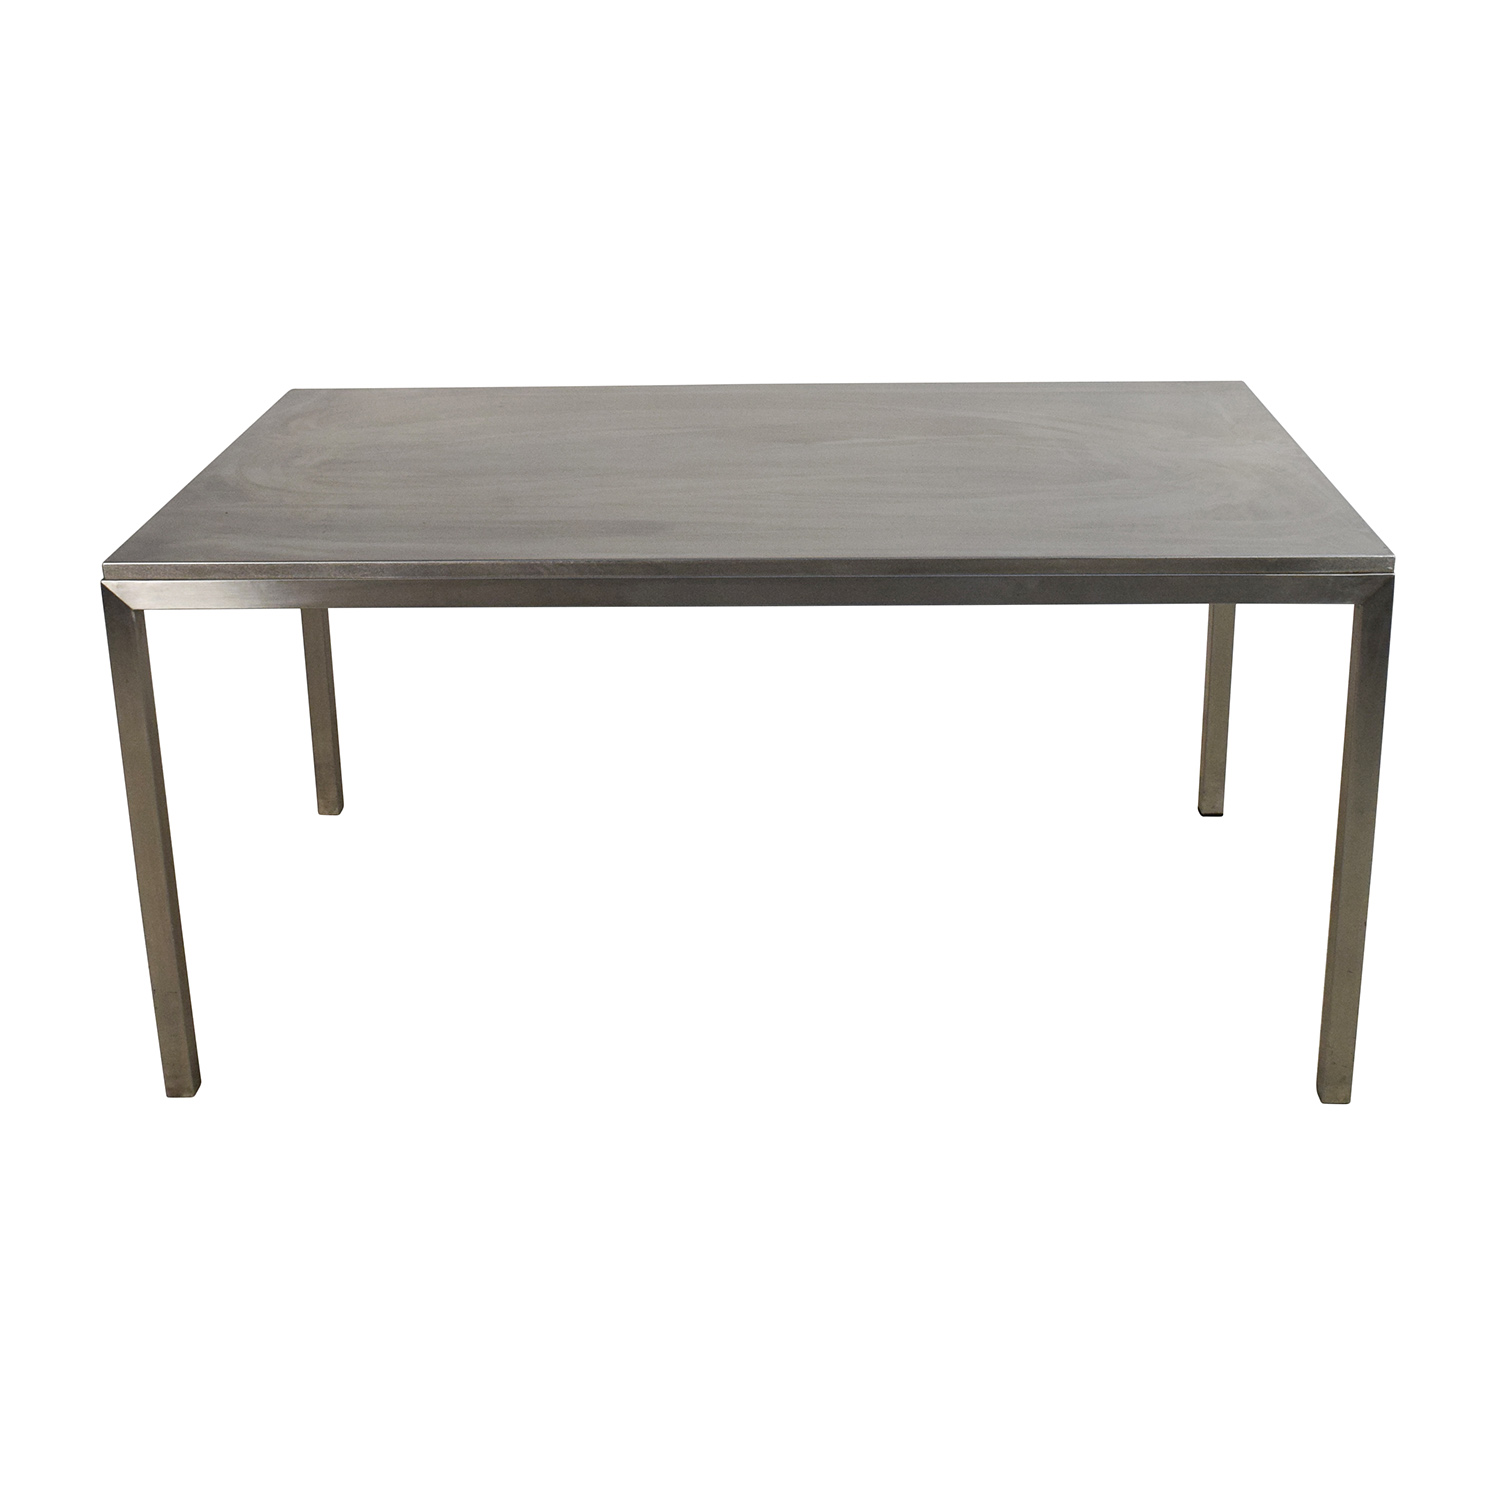 Room and Board Room & Board Portica Stainless Steel Dining Table for sale